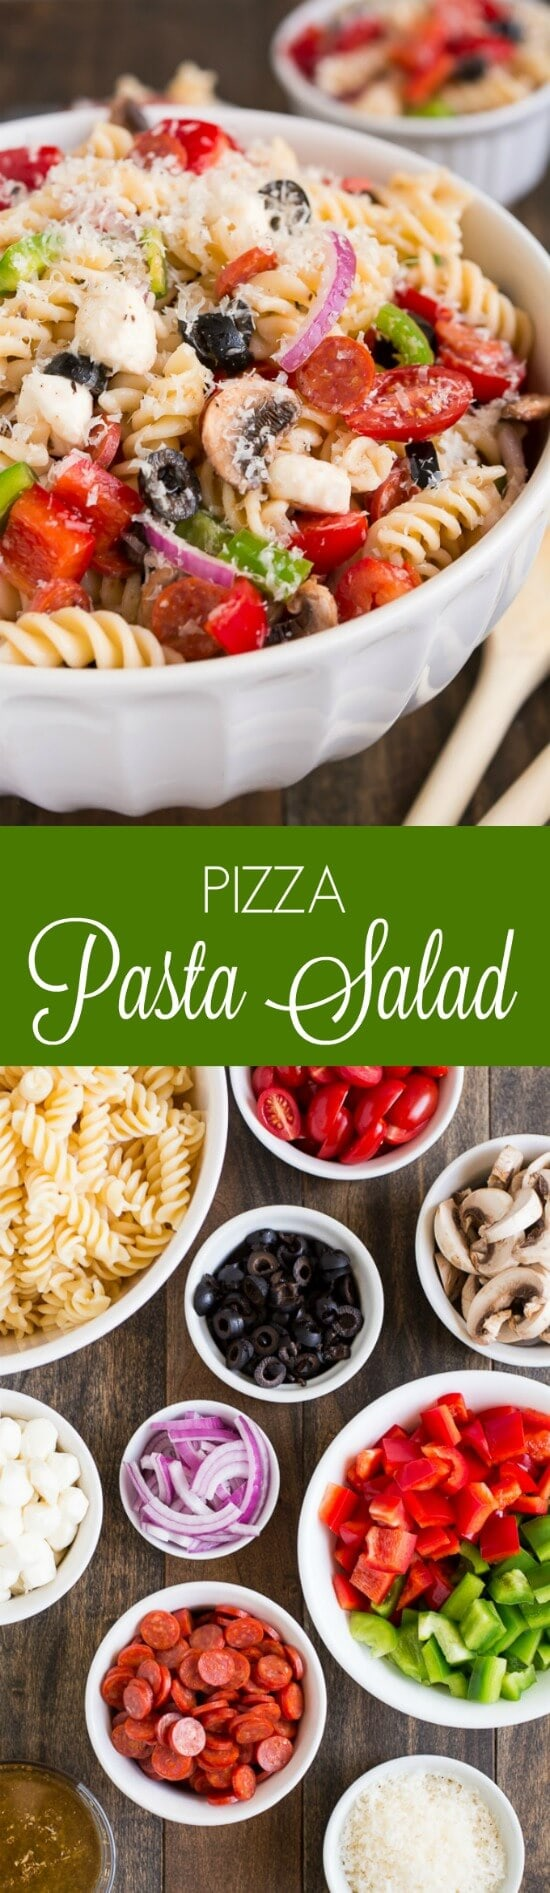 Serve Pizza Pasta Salad at your next barbecue and enjoy the delicious flavors of an Everything Pizza in this veggie, pepperoni, and cheese filled side dish.